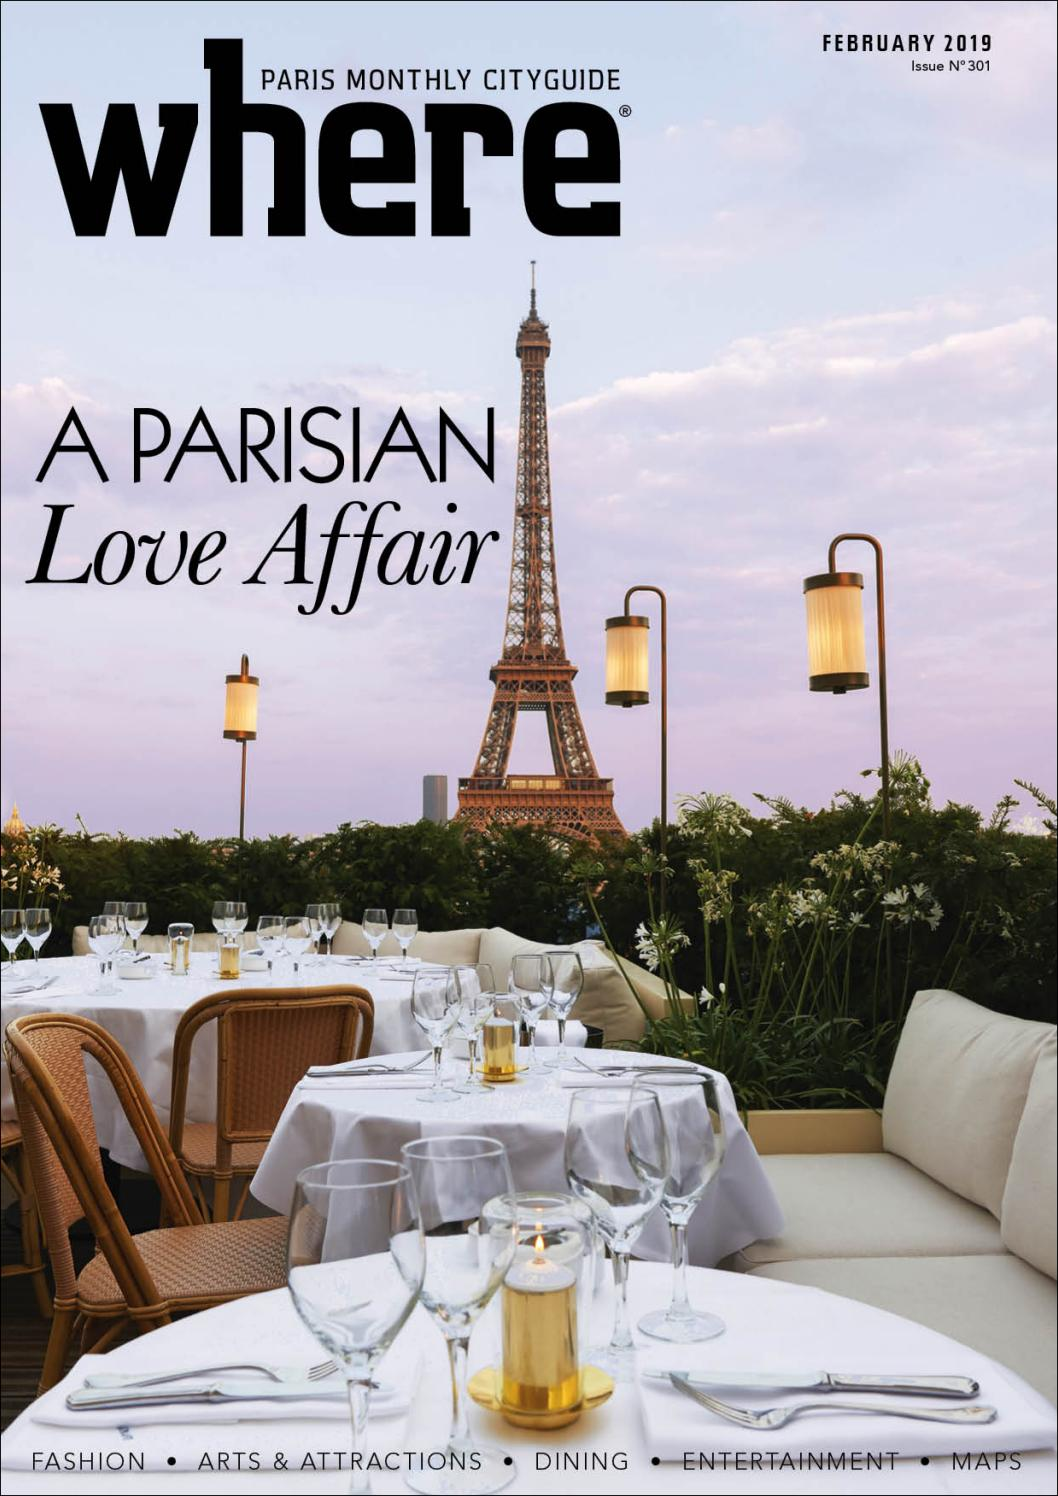 Diner Romantique Au Lit where magazine paris feb 2019morris media network - issuu